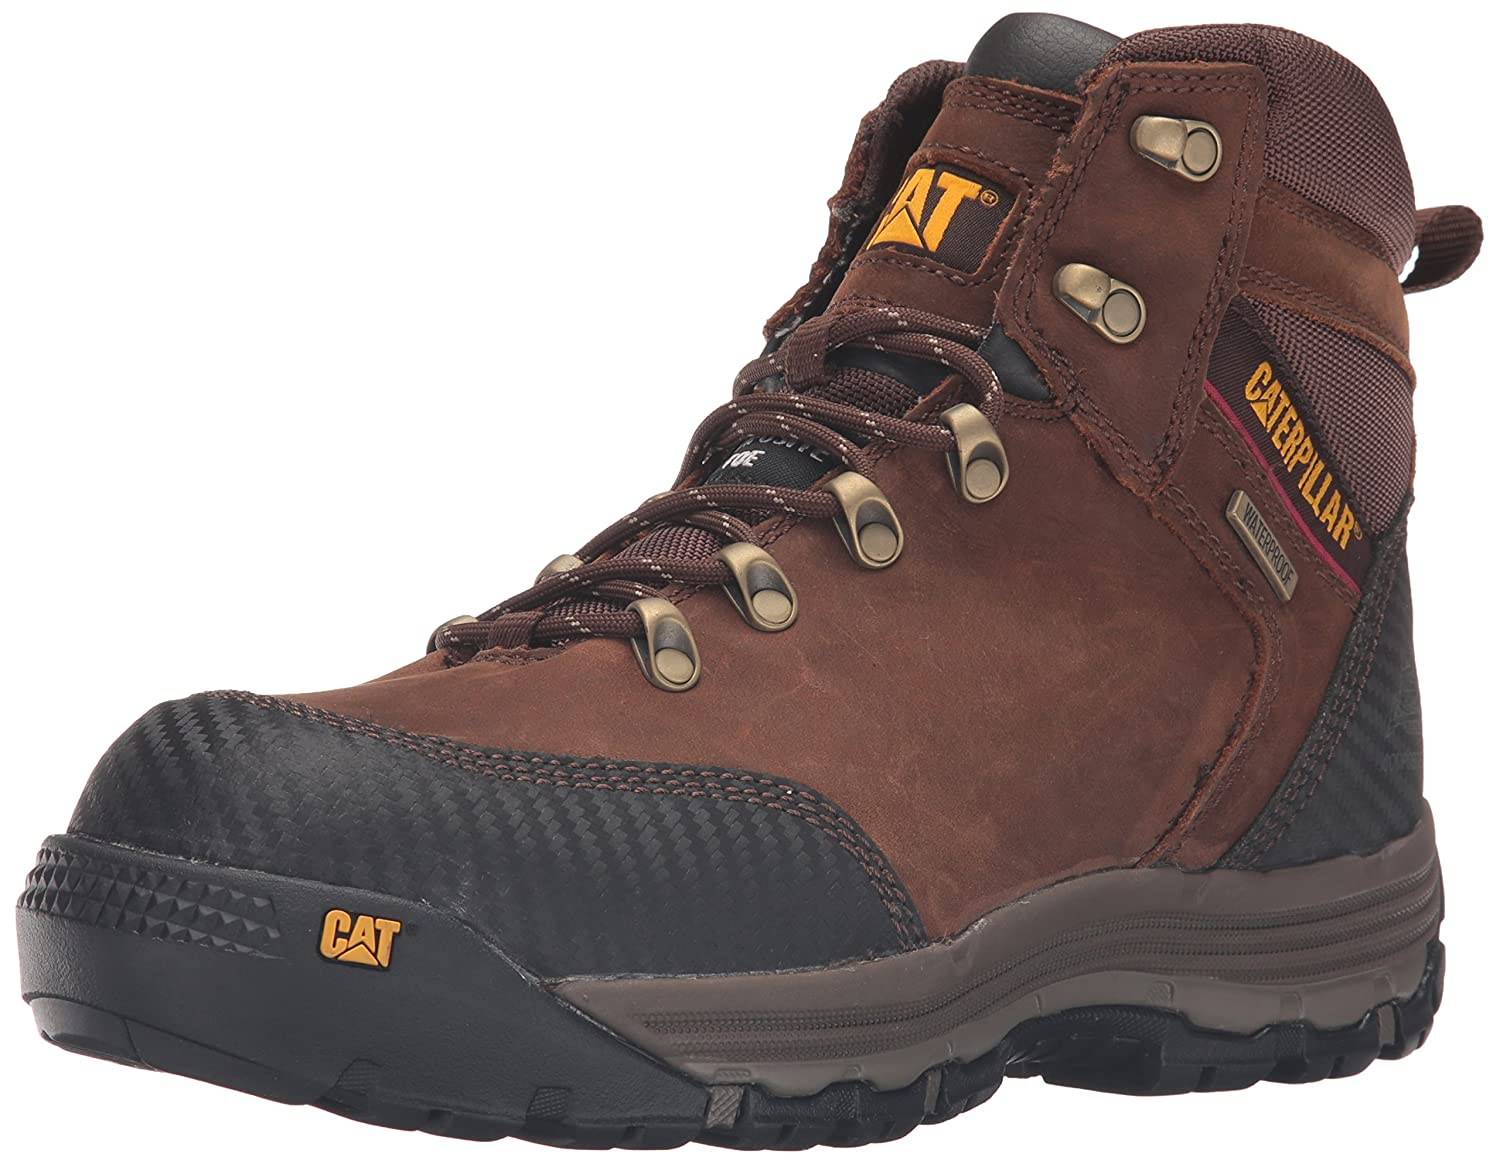 caterpillar shoes astm f2413-05 bootstrap tutorial point